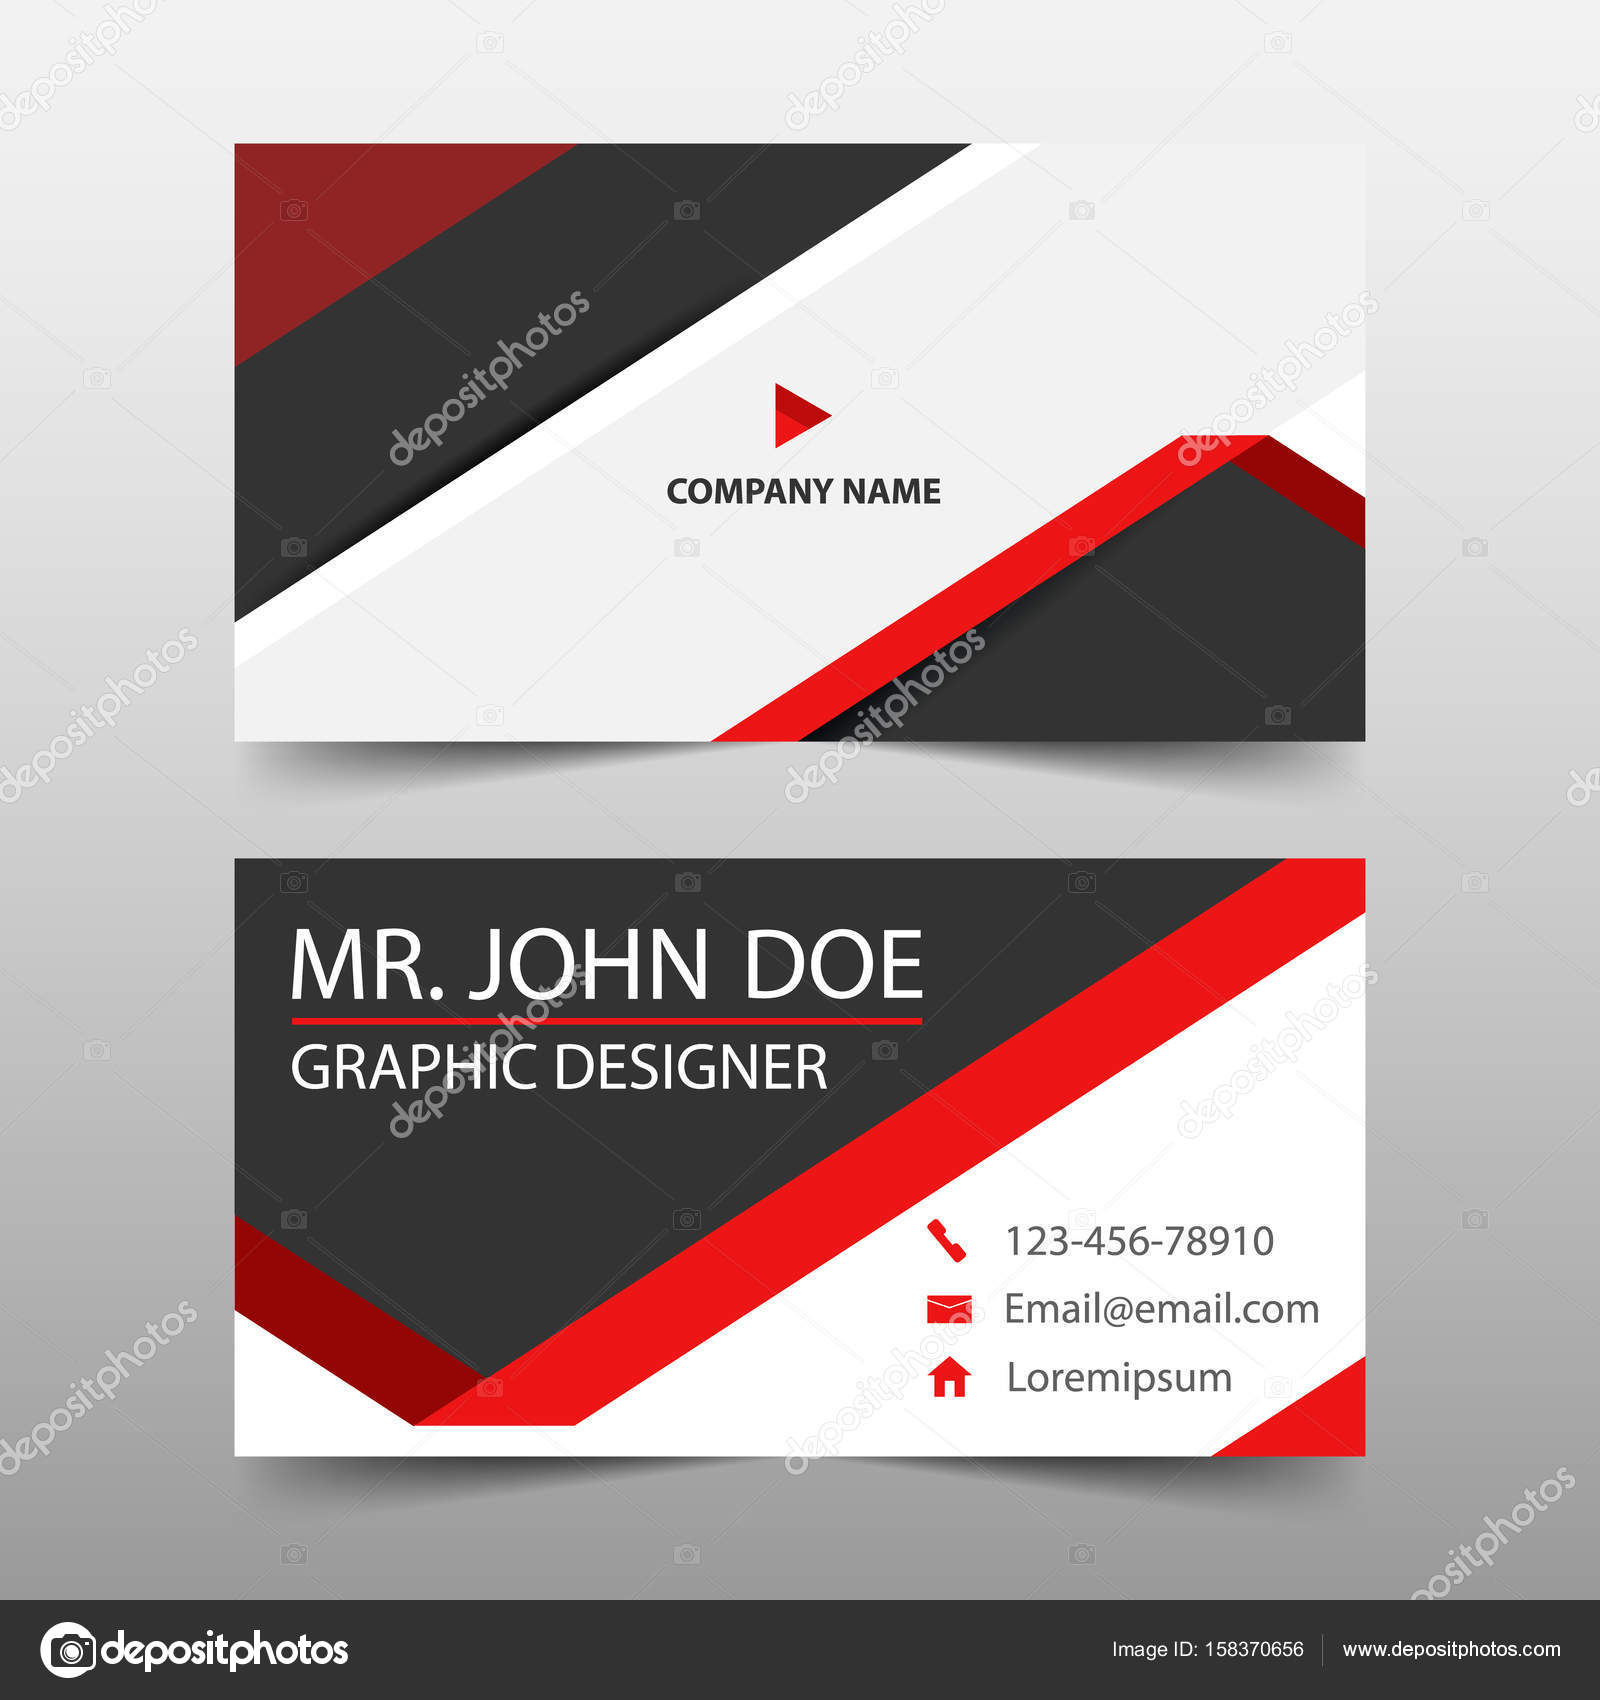 Red triangle corporate business card name card template horizontal red triangle corporate business card name card template horizontal simple clean layout design template flashek Choice Image